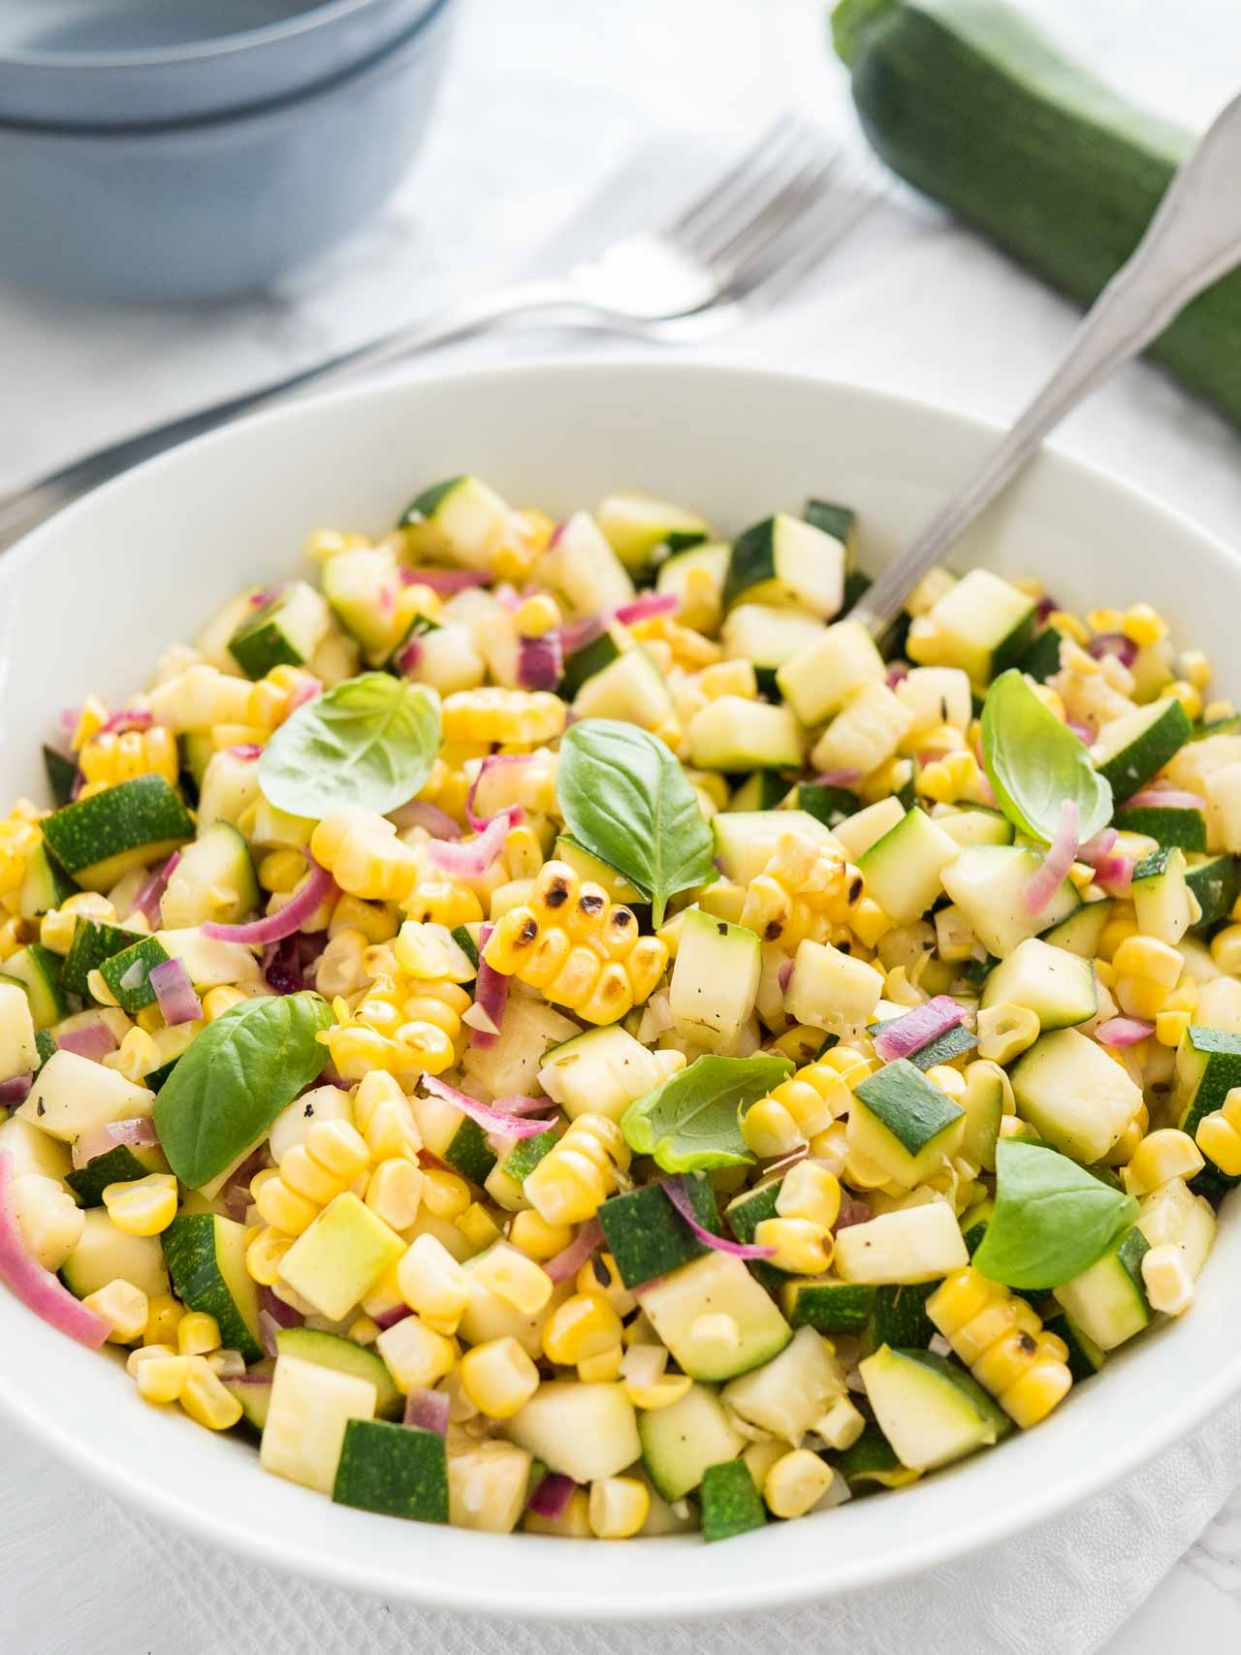 Roasted Corn Zucchini Salad - Salad Recipes Using Zucchini